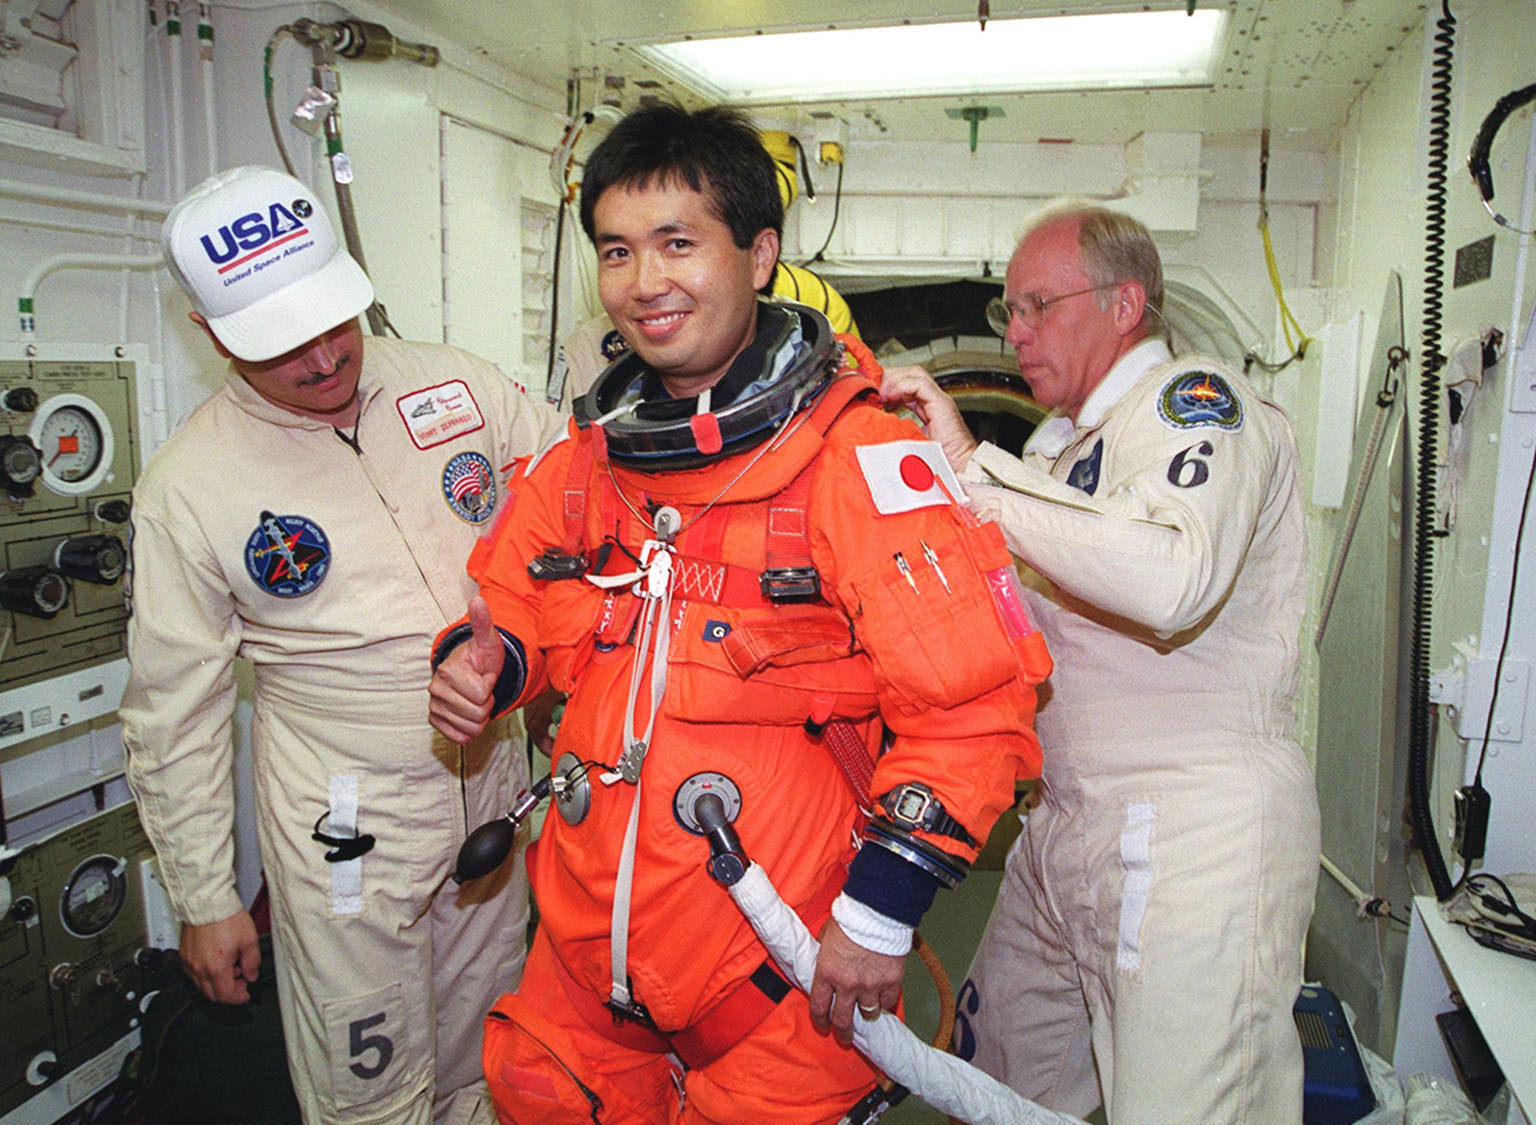 STS-92 Mission Specialist Koichi Wakata of Japan (center) gets help from United Space Alliance Mechanical Technician Vinny Difranzo (left) and NASA Quality Assurance Specialist Danny Wyatt (right) in suiting up in the White Room. Wakata and other crew members are taking part in a simulated countdown KSC for Terminal Countdown Demonstration Test (TCDT) activities. STS-92 is scheduled to launch Oct. 5 at 9:38 p.m. EDT on the fifth flight to the International Space Station. It will carry two elements of the Space Station, the Integrated Truss Structure Z1 and the third Pressurized Mating Adapter. The mission is also the 100th flight in the Shuttle program